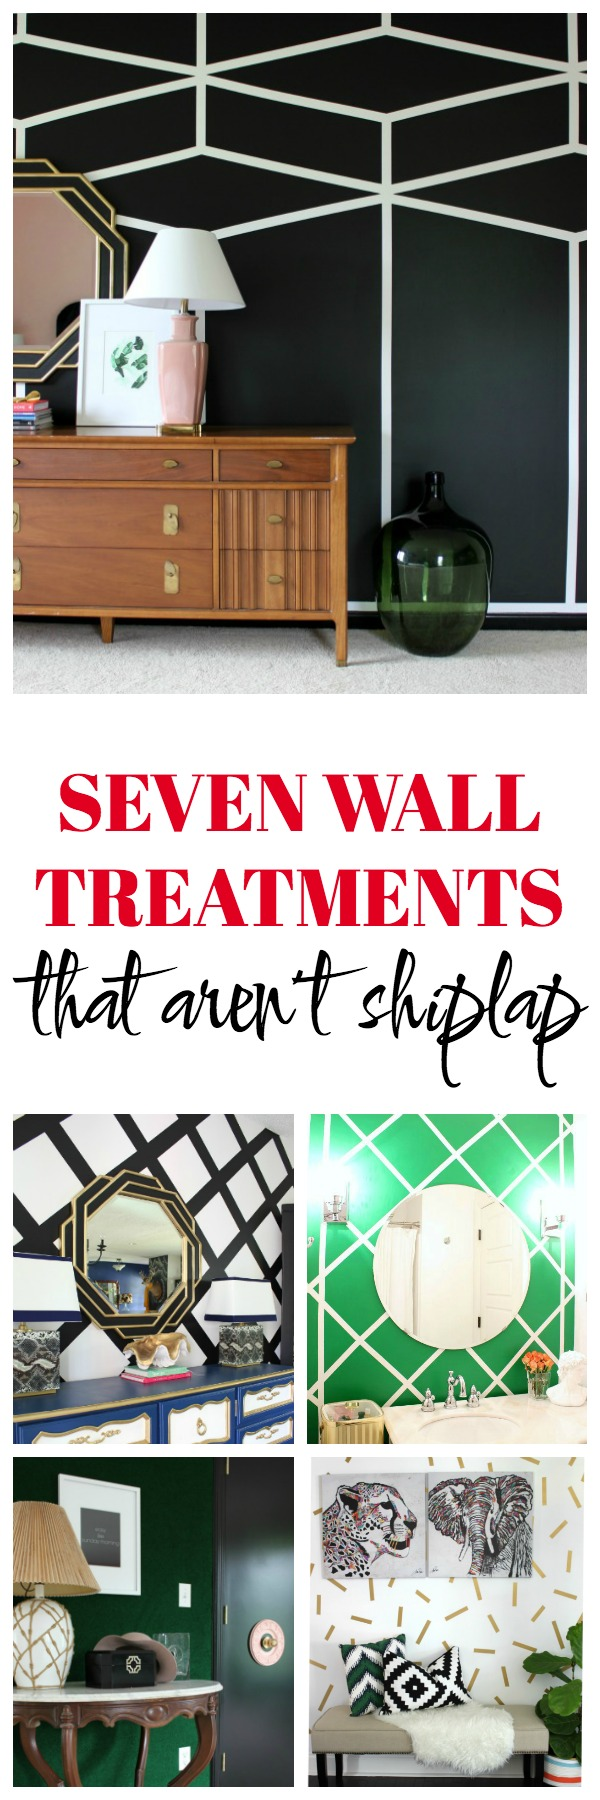 Wall Treatments That Aren't Shiplap | Accent Wall Ideas | Feature Wall Ideas | Accent Wall Designs | DIY Accent Wall | Painted Accent Wall